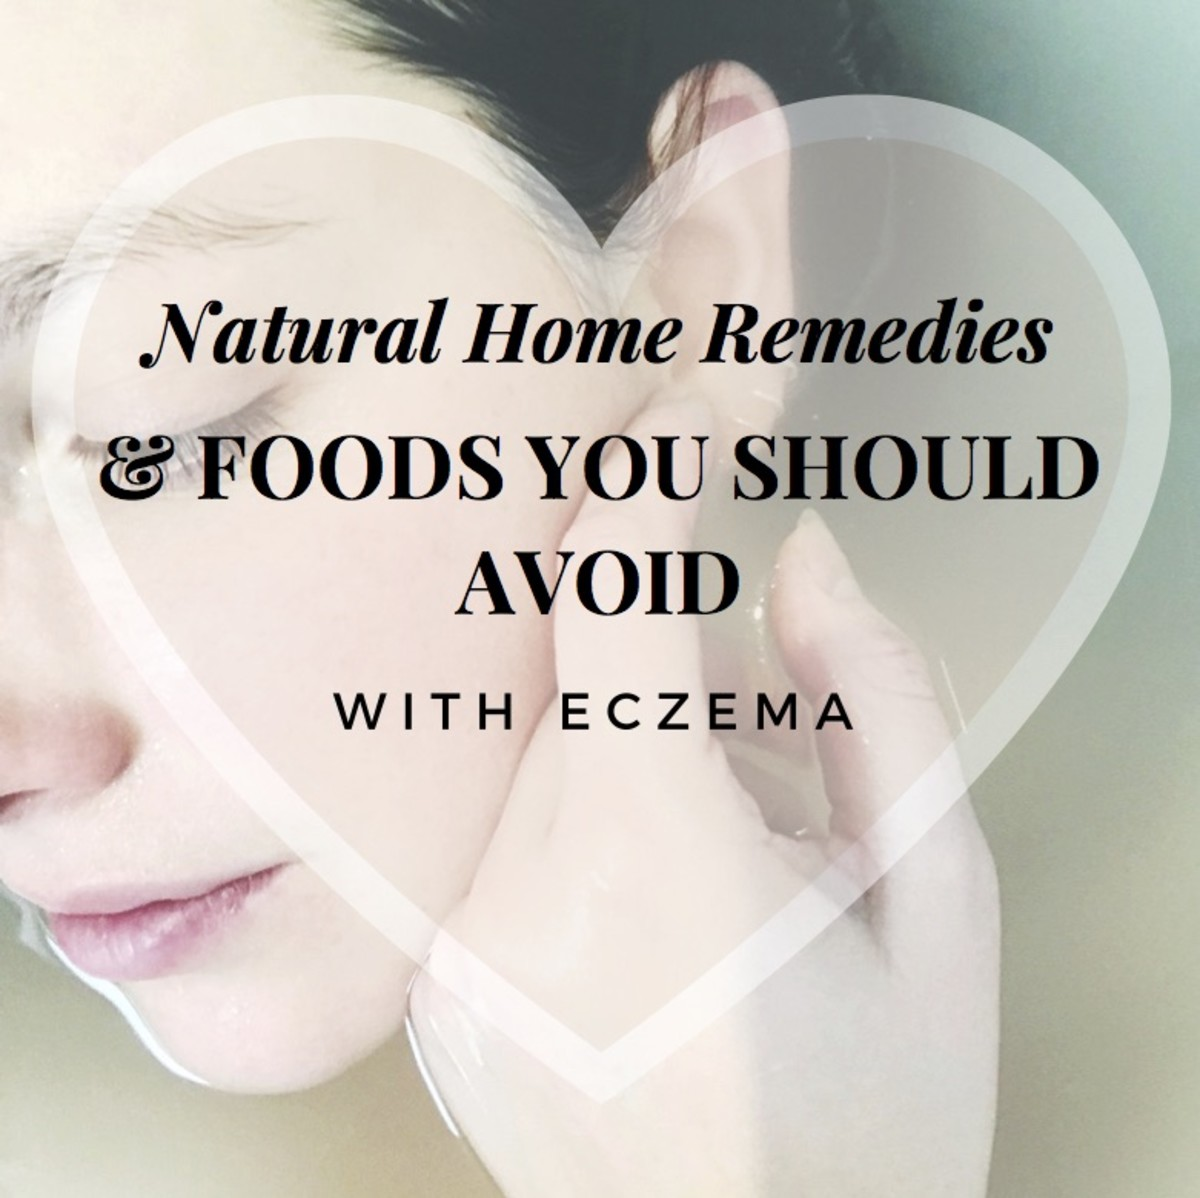 Natural Home Remedies and Foods You Should Avoid With Eczema